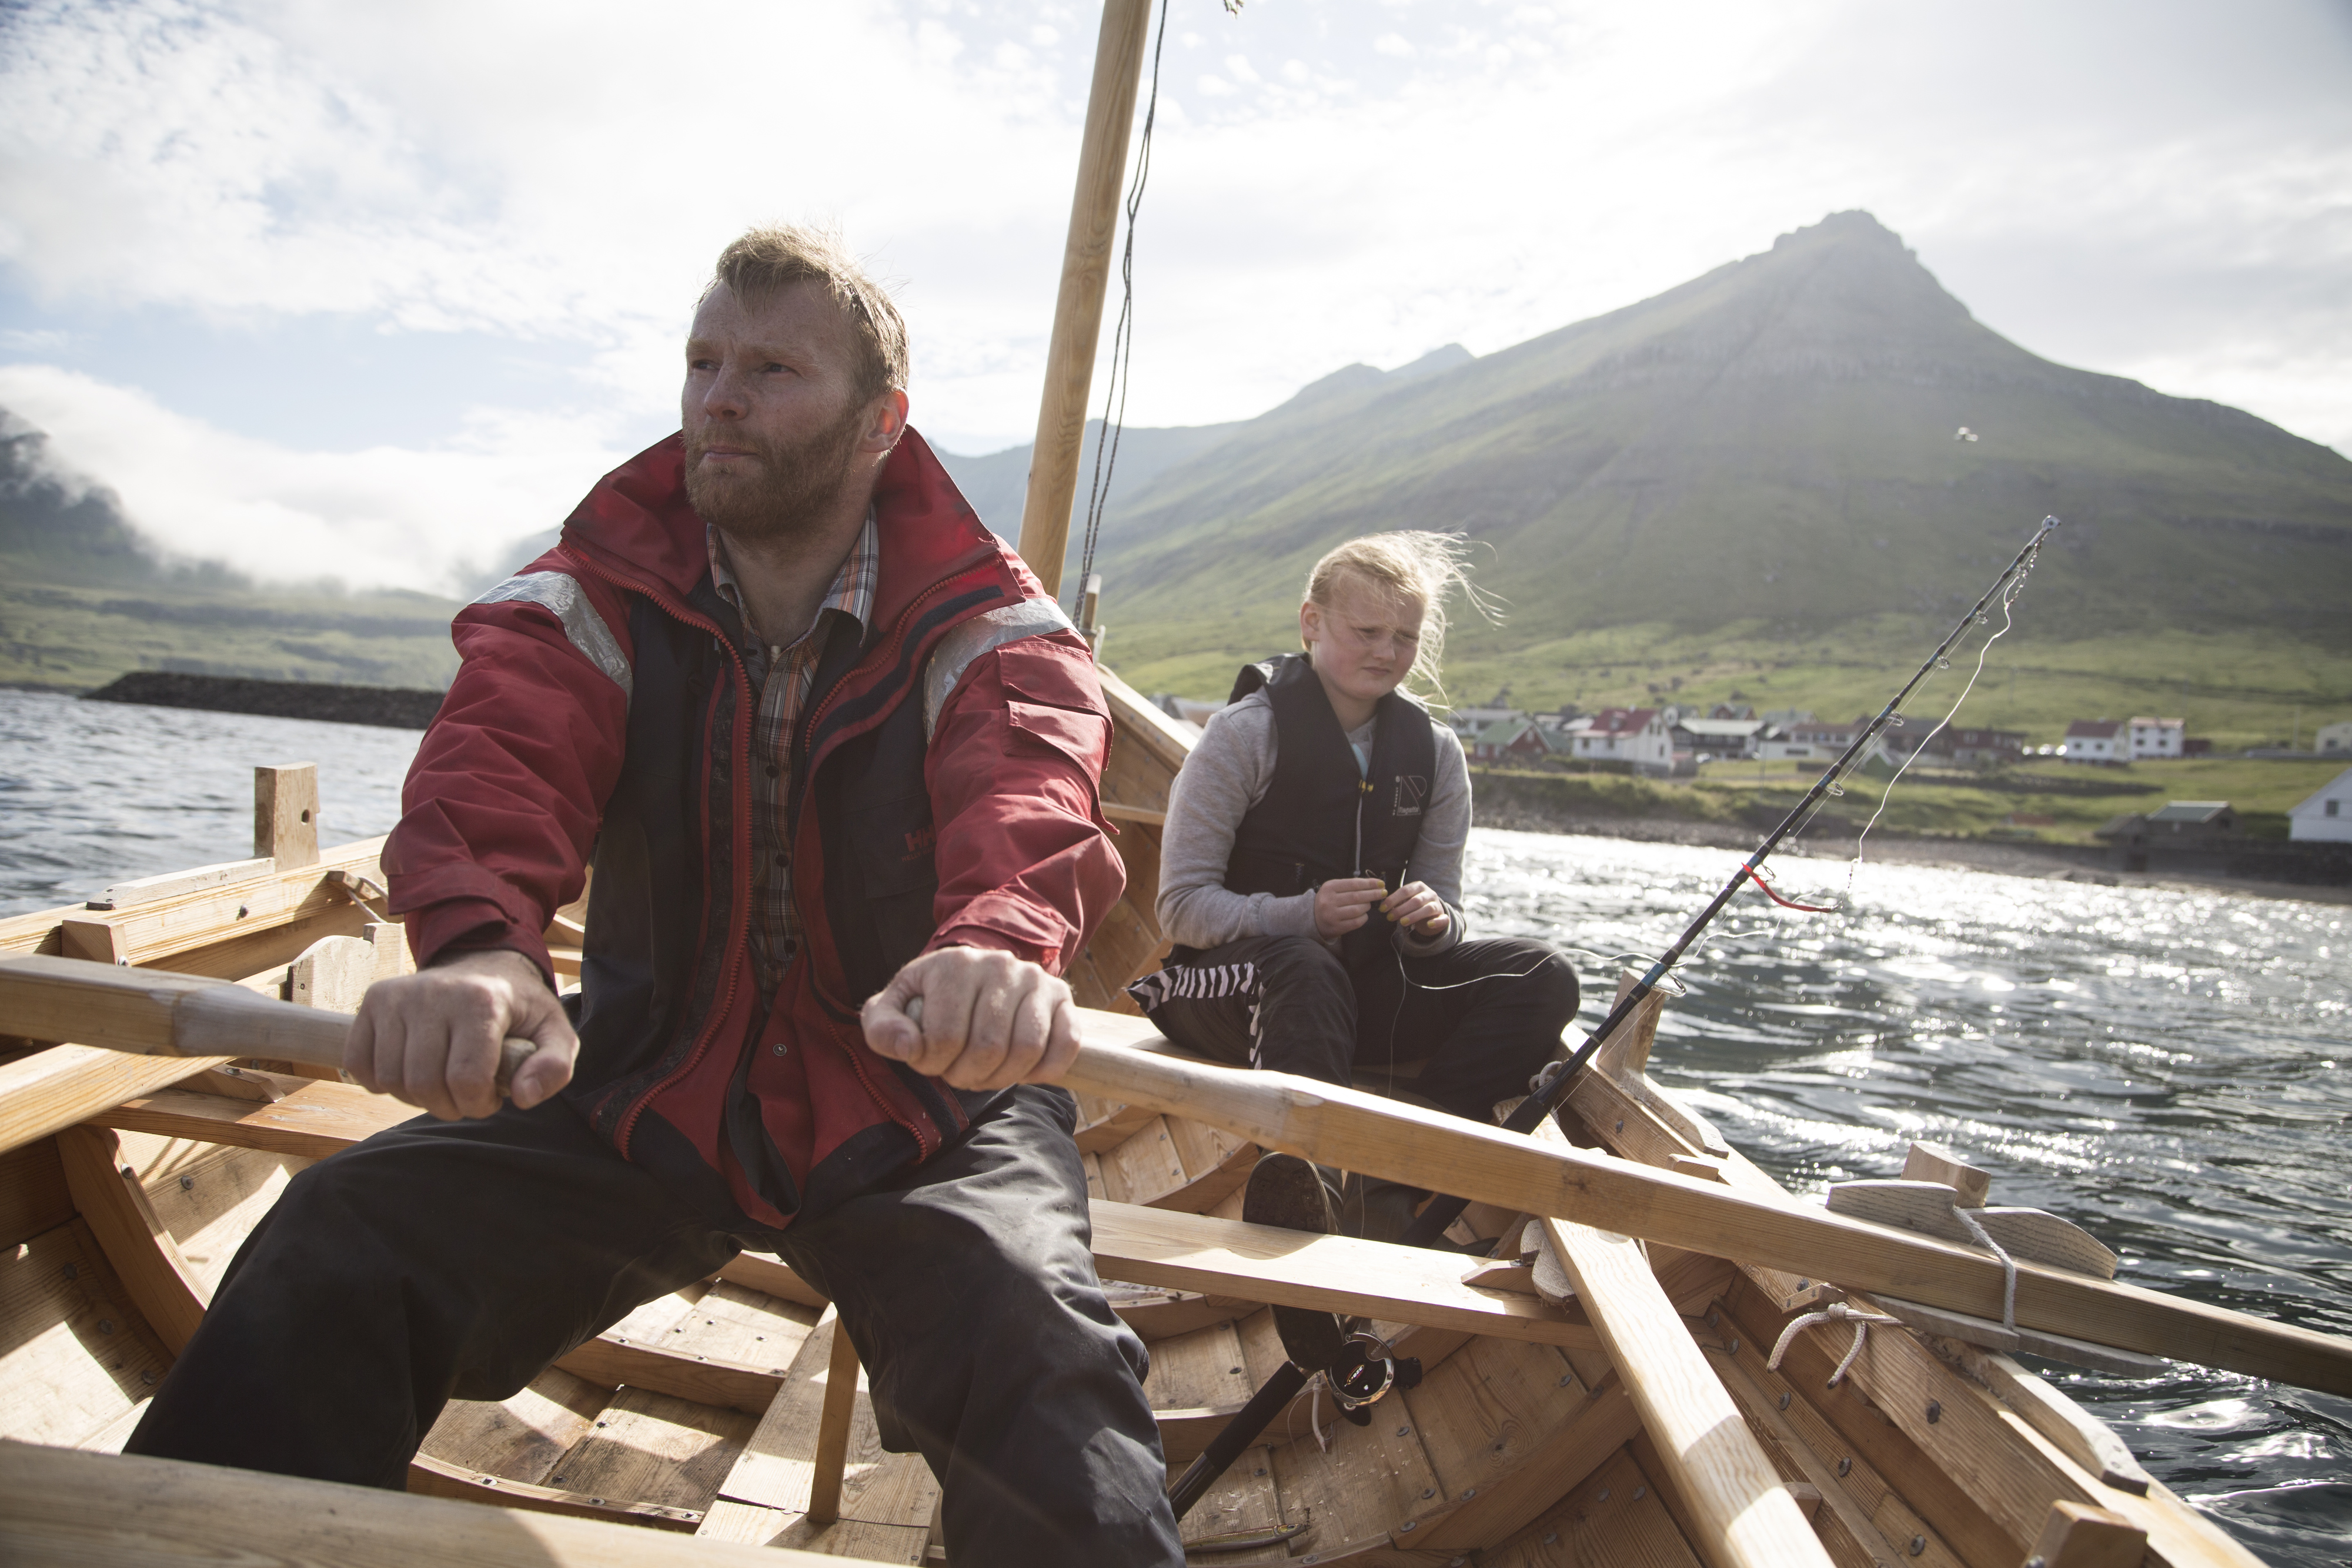 Martin Fløghamri fishes with his daughter in their home town of Oyndarfjørdur, Faroe Islands on July 23, 2014. Photo: Ed Ou